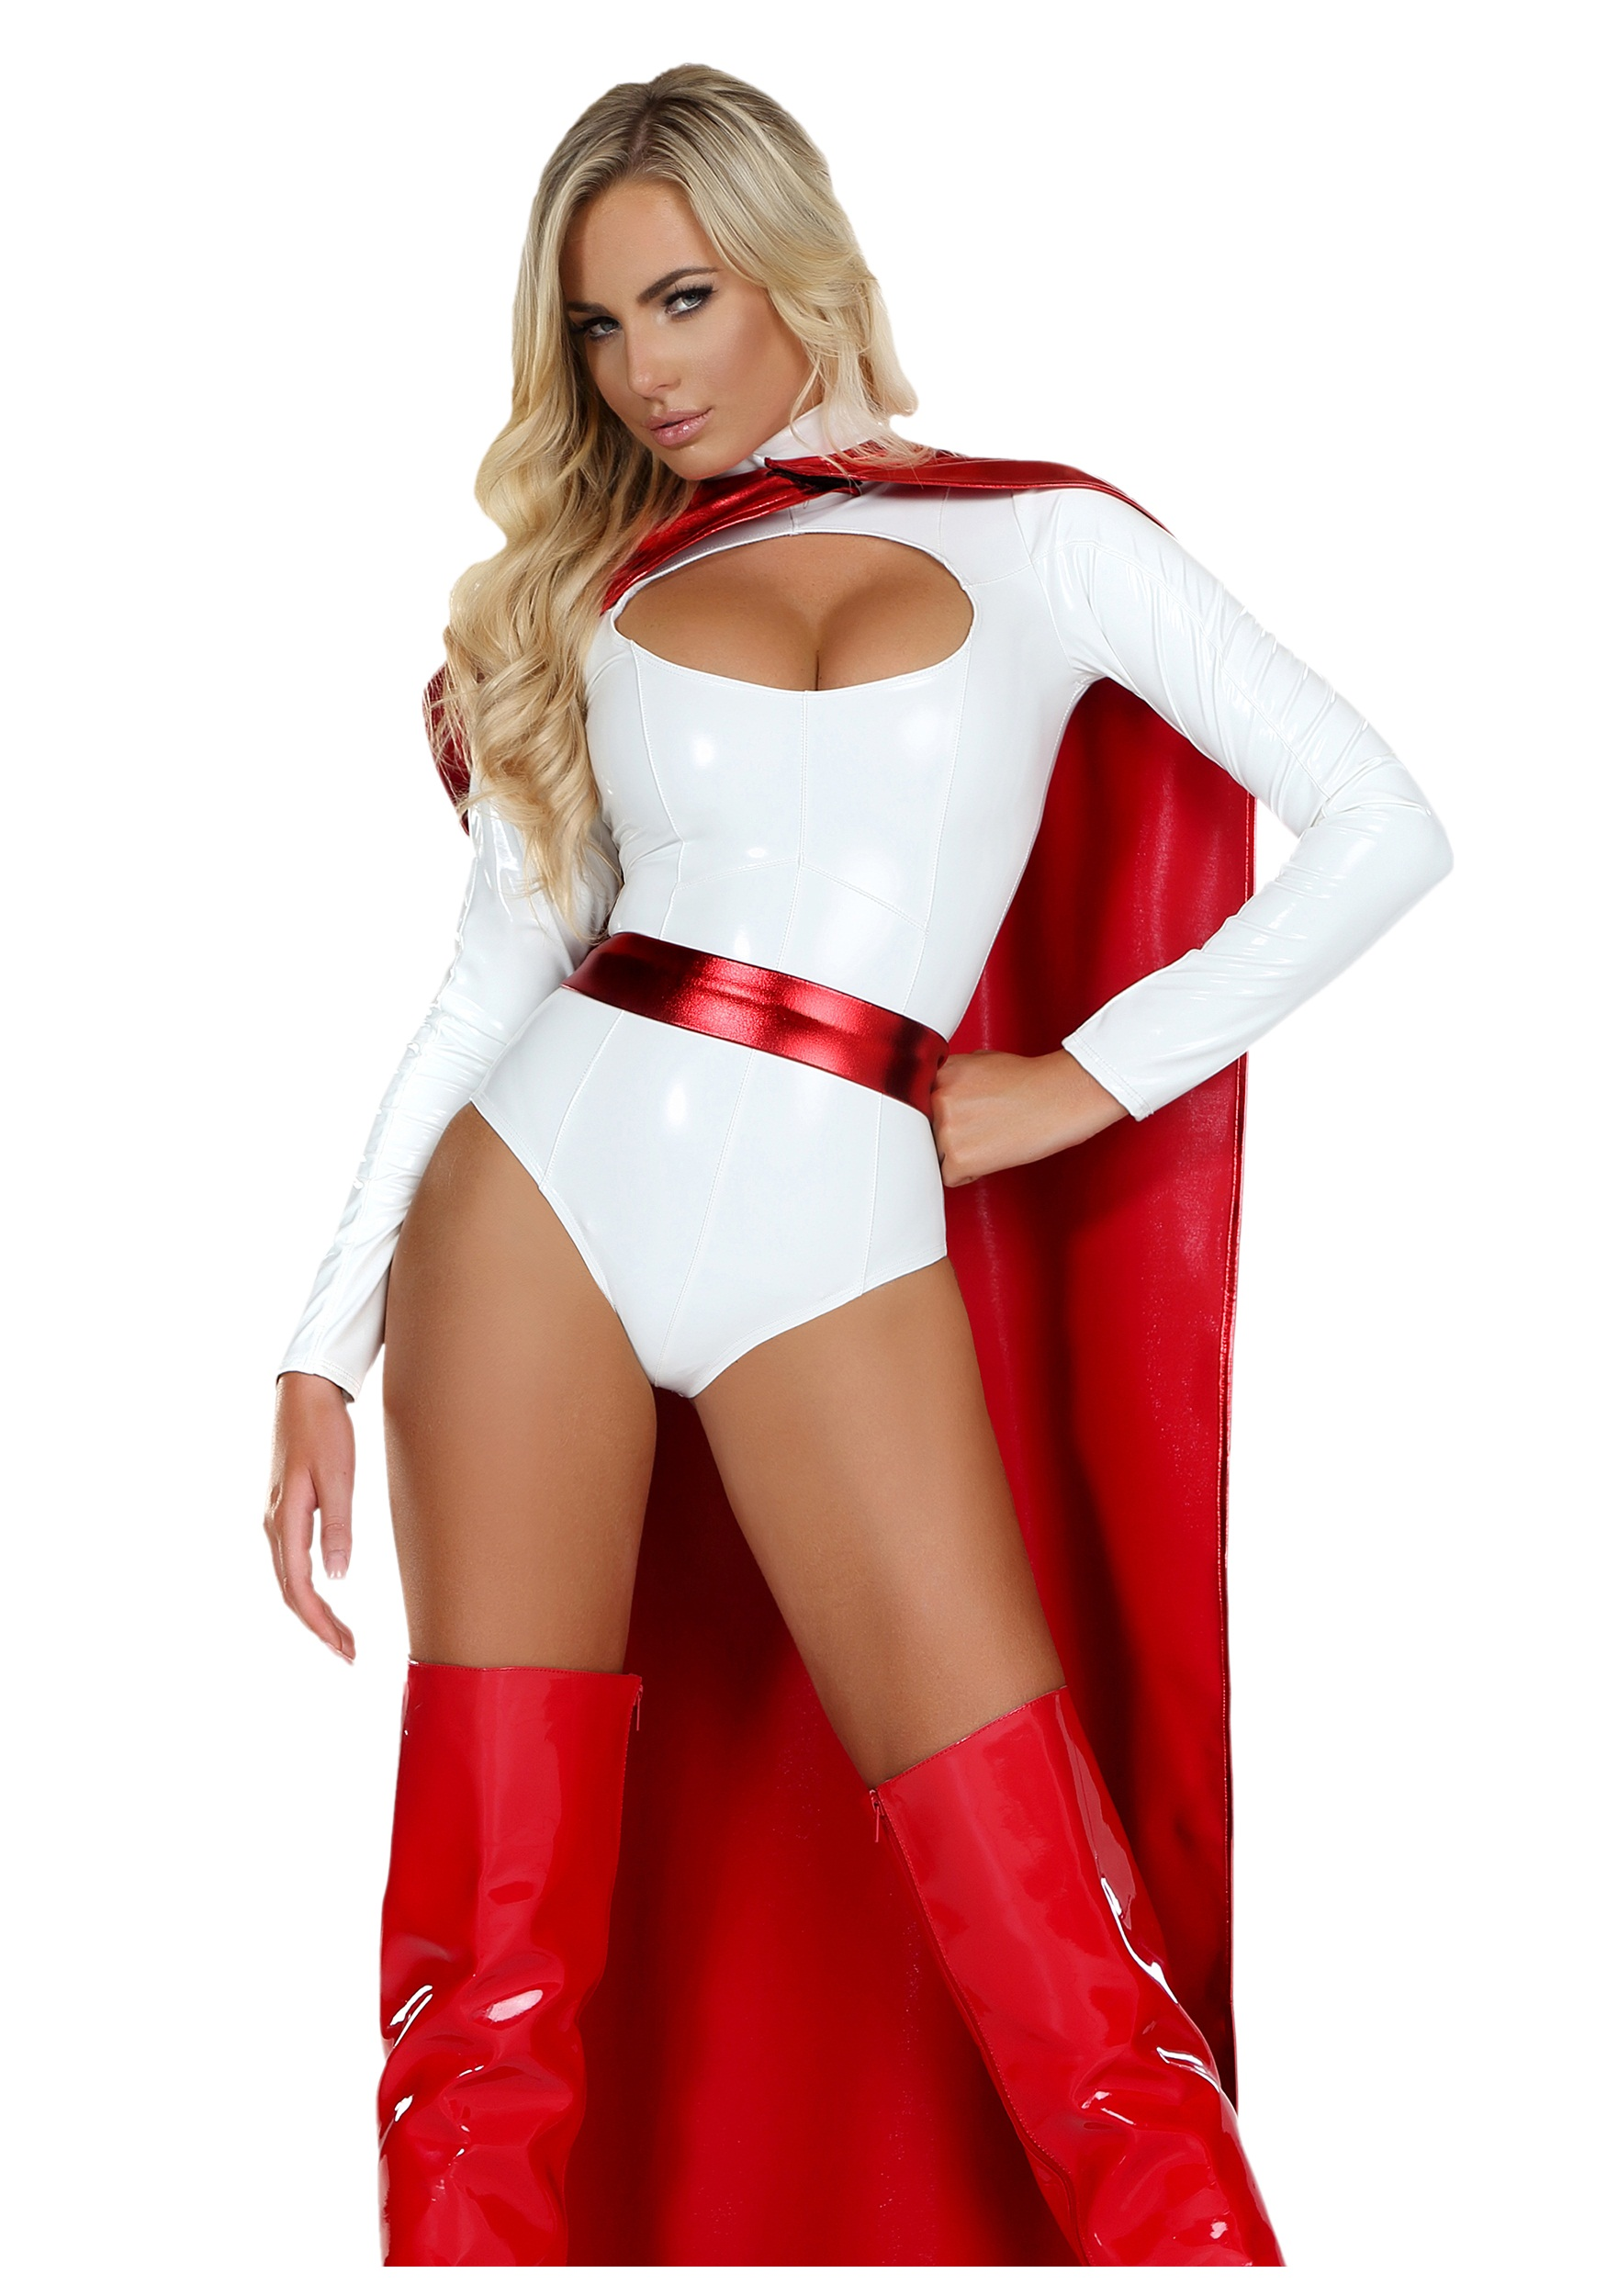 Womens Powerful Superhero Costume  sc 1 st  Halloween Costumes : superhero costumes womens  - Germanpascual.Com